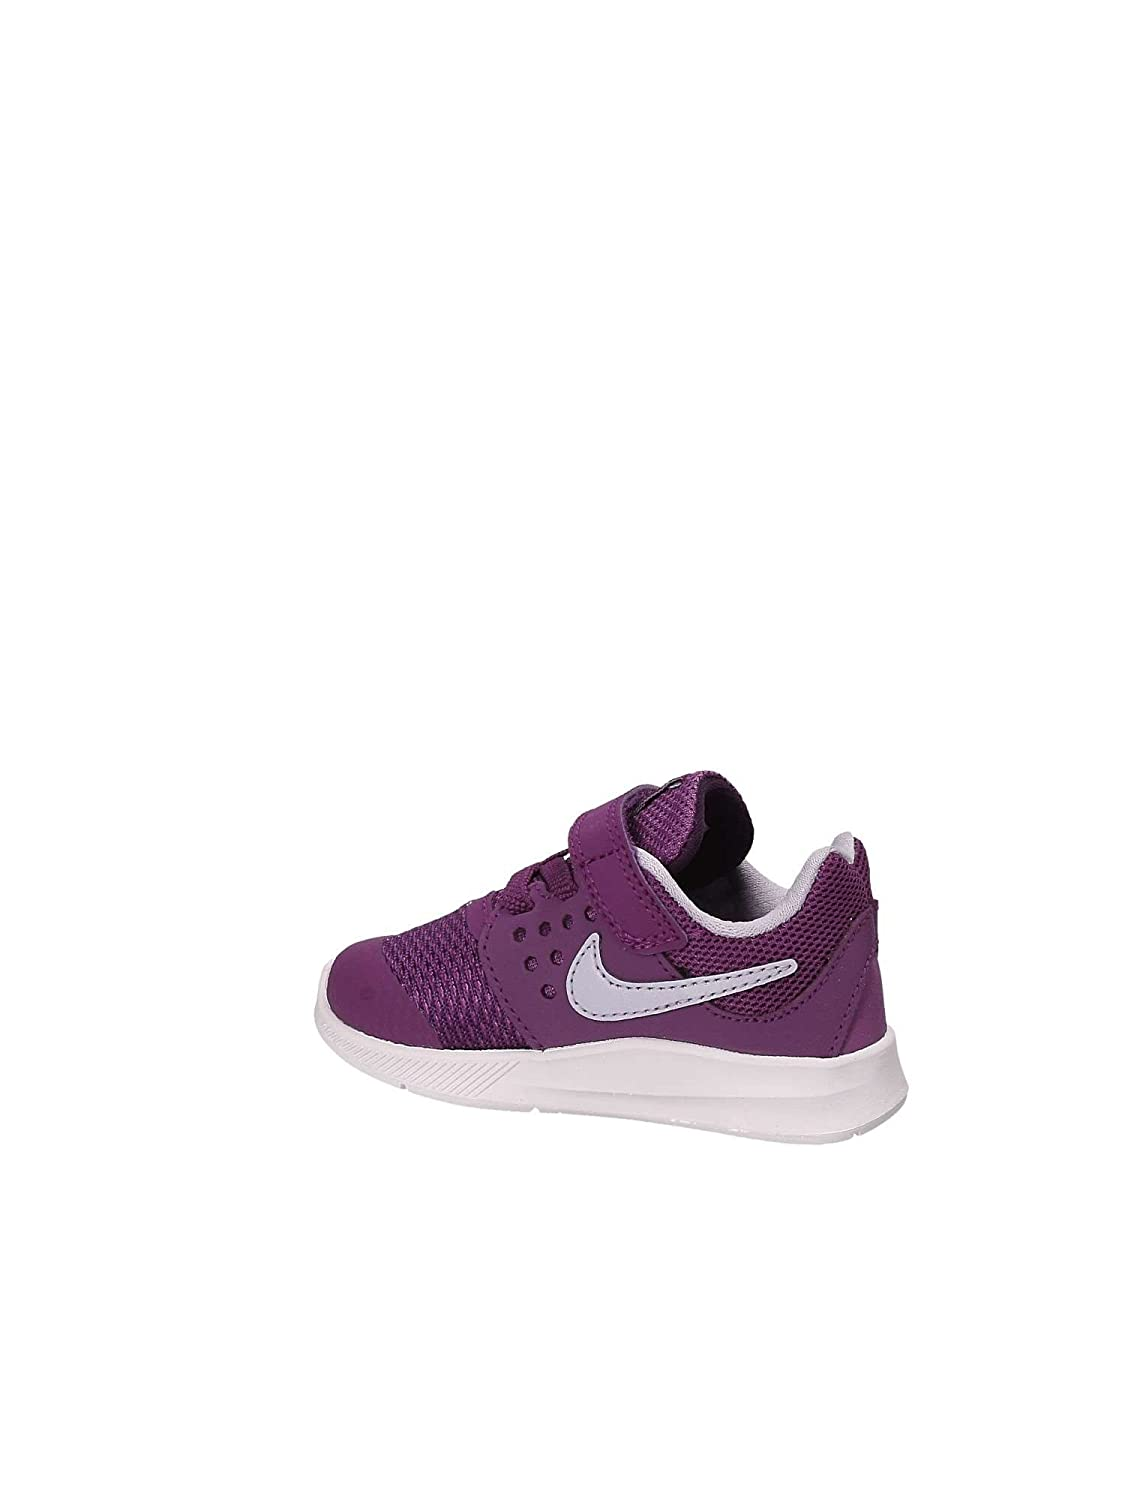 0ffb43e568 Amazon.com: Nike Kids Downshifter 7 Infant/Toddler Night Purple/Violet  Mist/Bold Berry Girls Shoes: Shoes